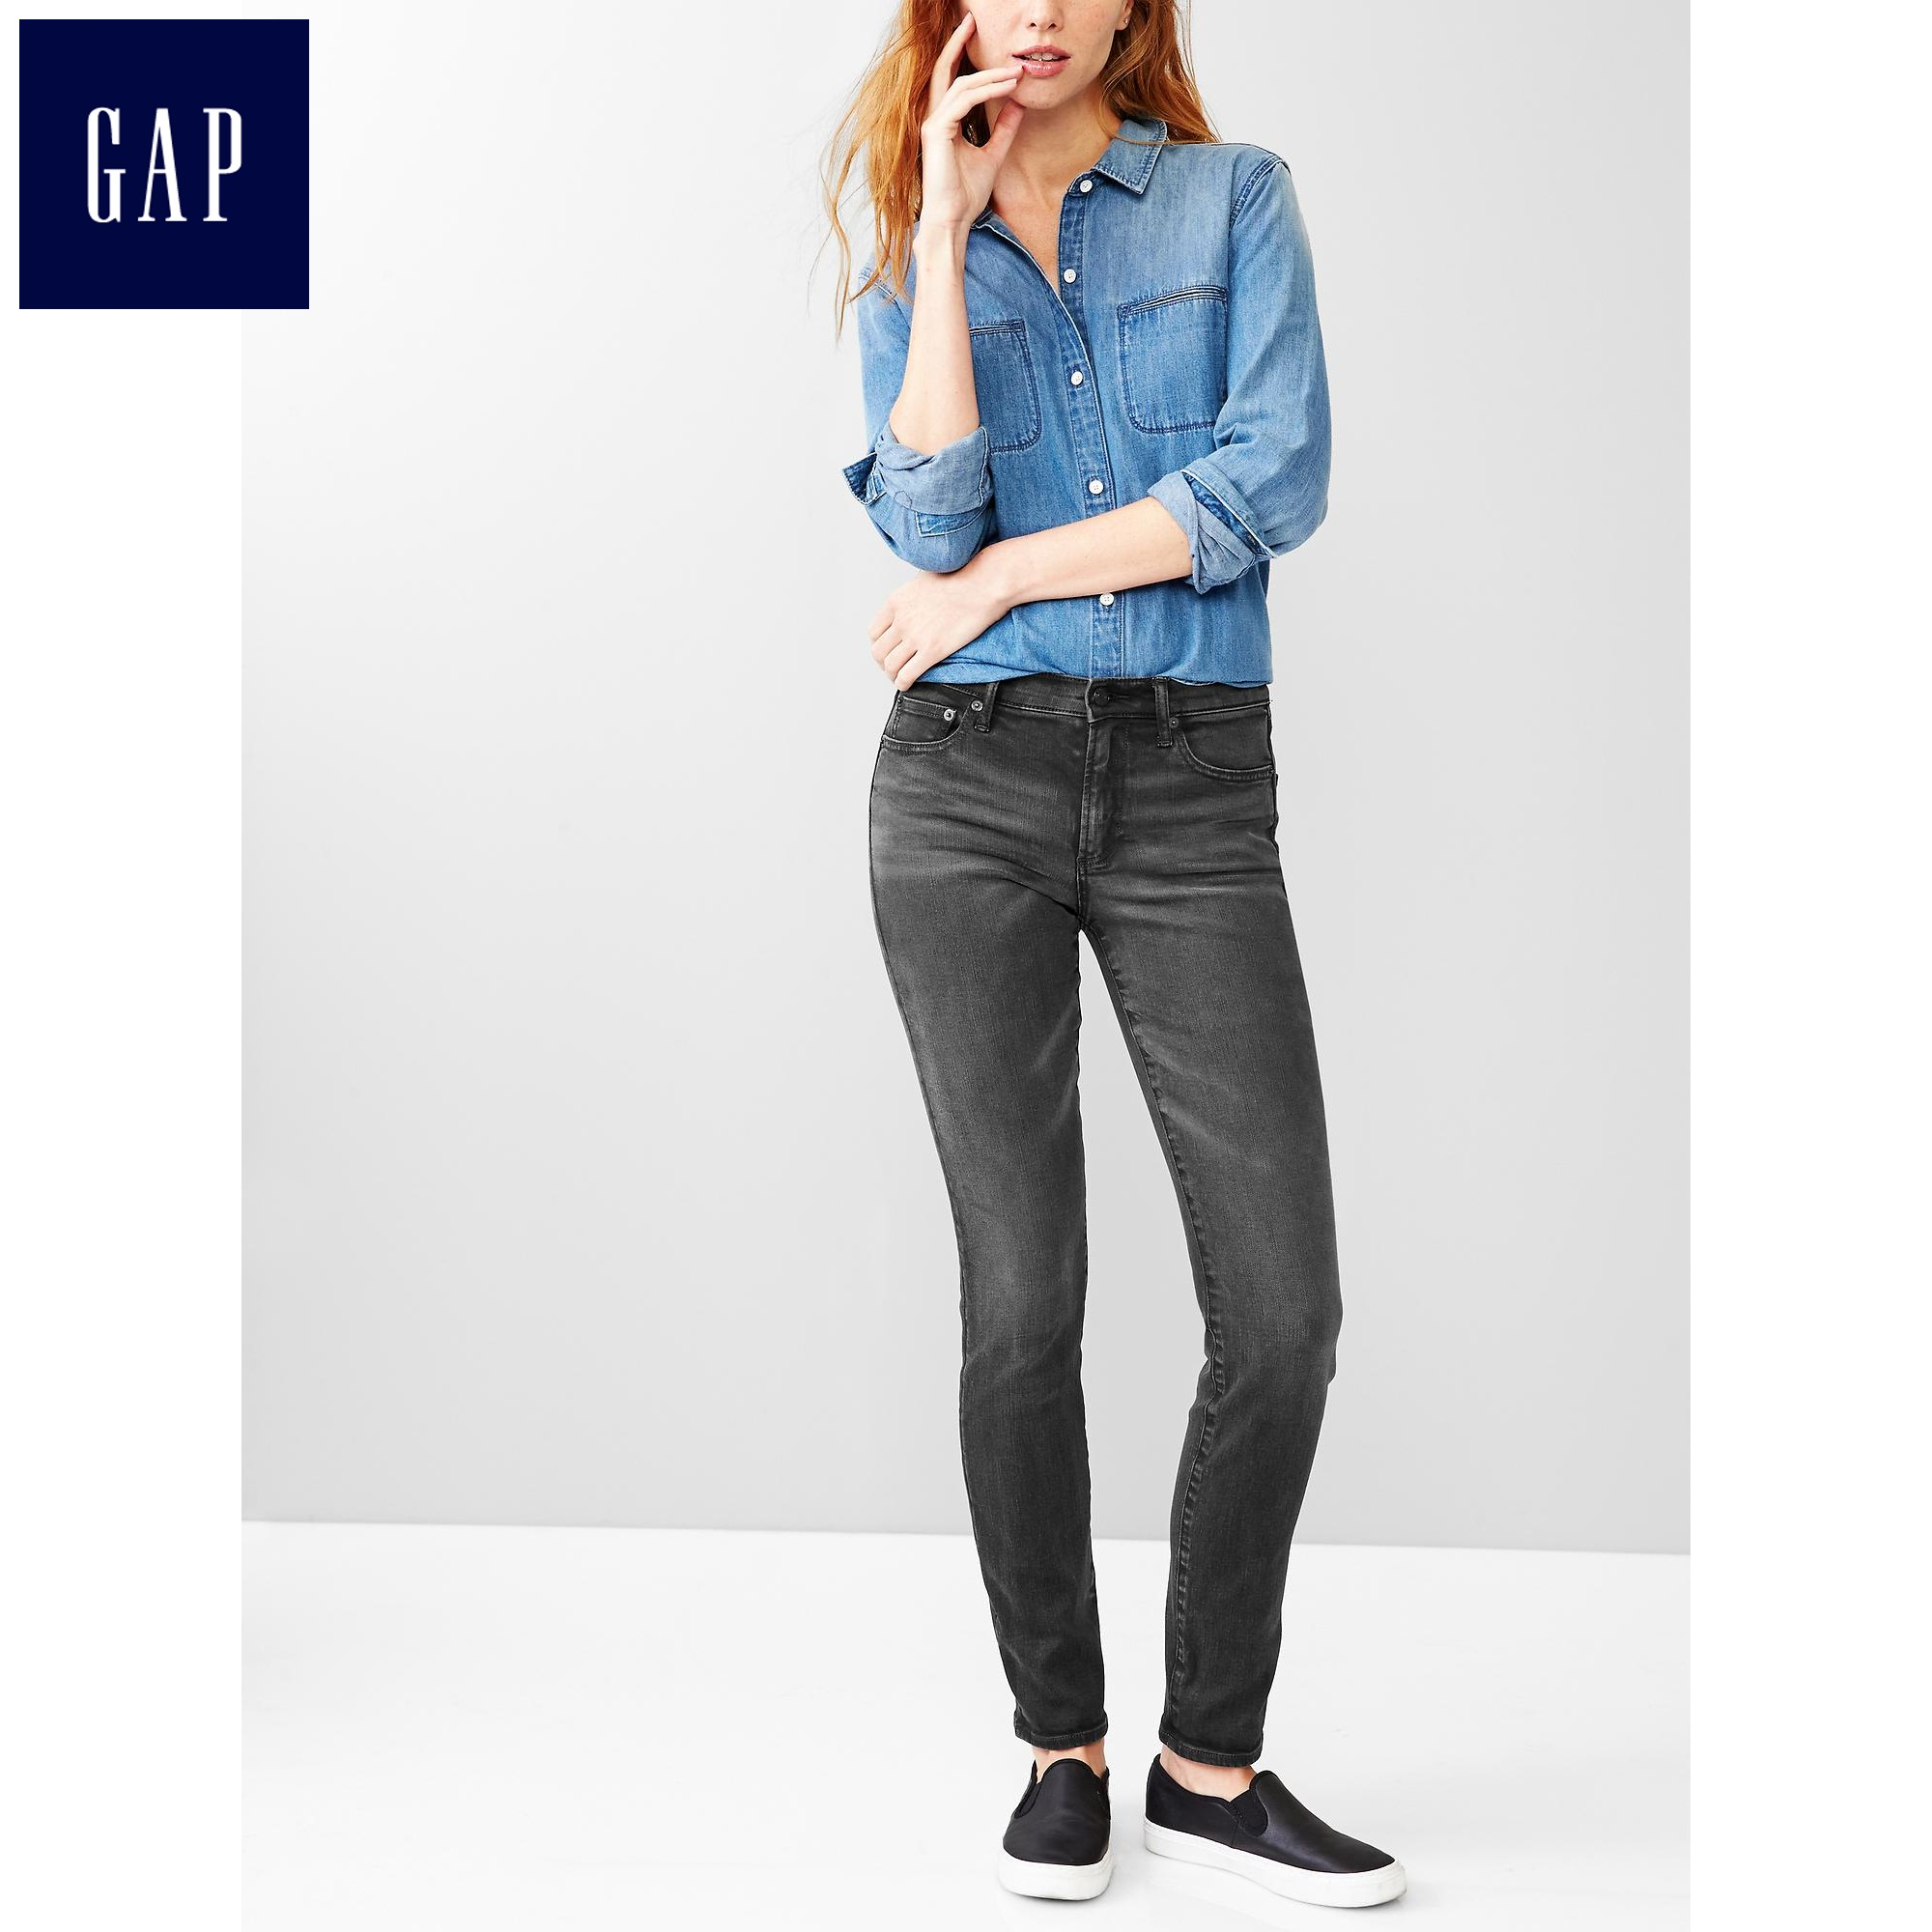 single women in east stone gap Jcrew is style over fashion and offers timeless outfits for women, men, and children it's sneakers with suits, color blocks & pattern-mixing, denim jeans with chambray.